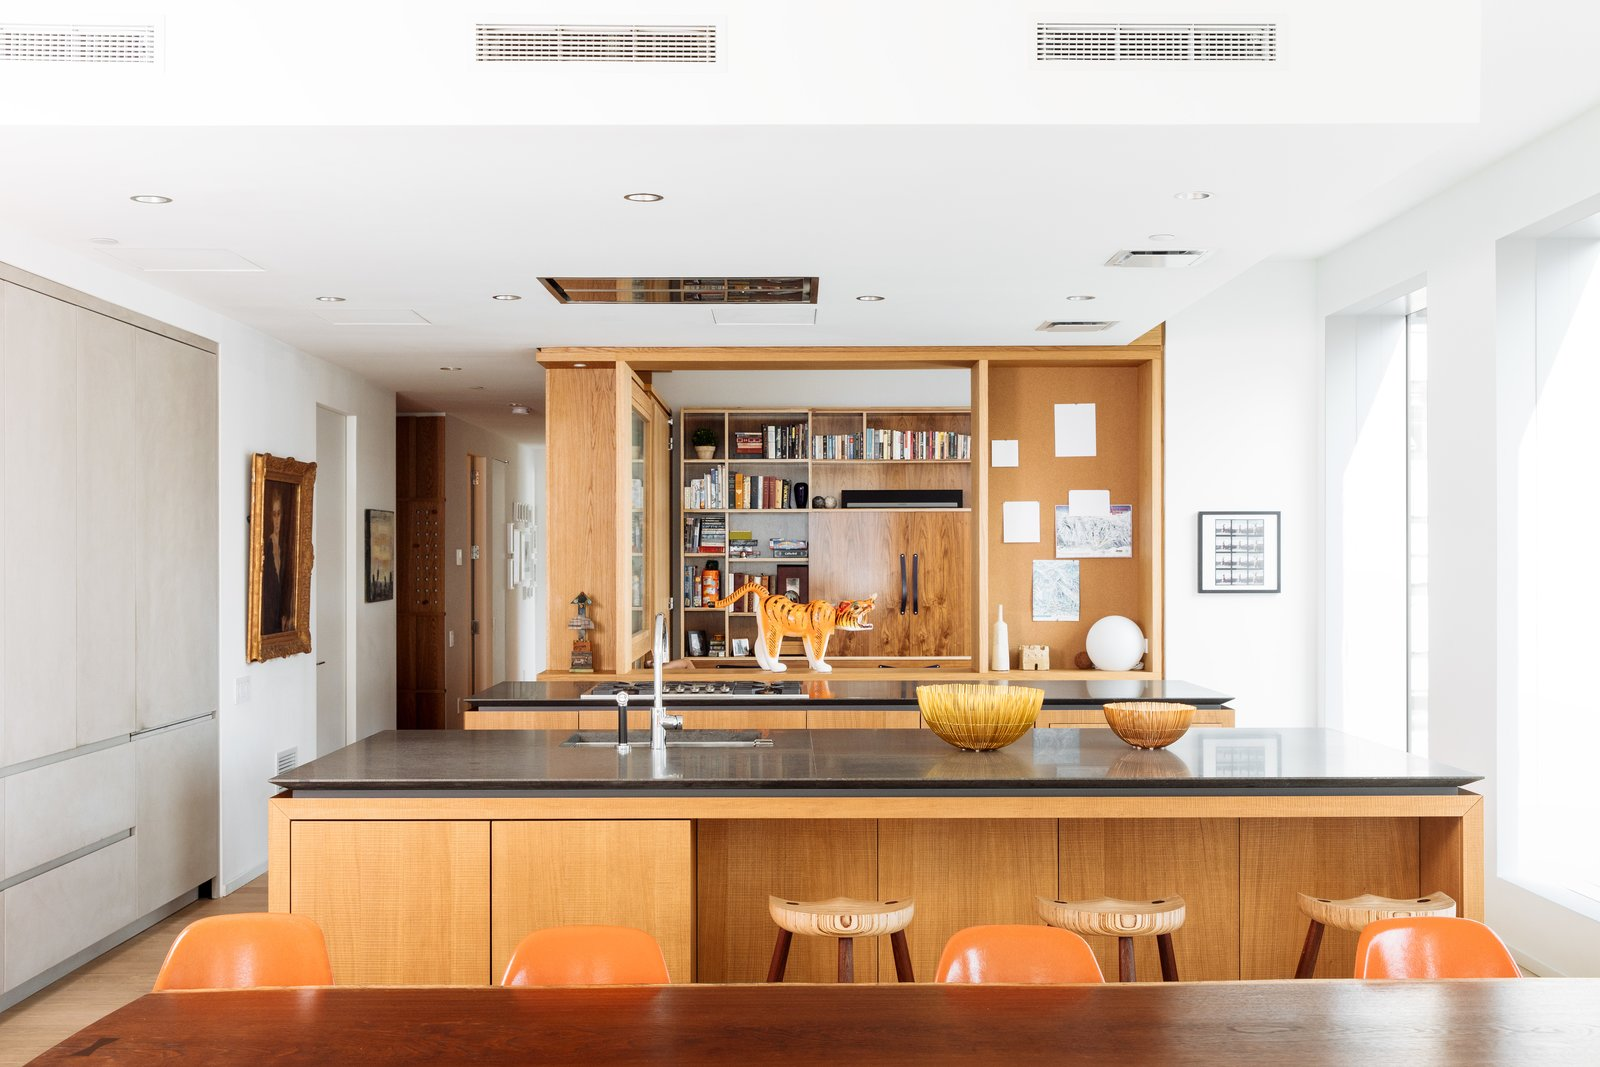 Kitchen, Wood, Cooktops, Recessed, Undermount, Light Hardwood, Engineered Quartz, Wood, and Range Hood The media/guestroom is encased in white oak shelving and features a large translucent glass window. When it's open, the room connects visually to the kitchen. The stools and dining table are by Harlem Built; the Eames Molded Plastic chairs add a touch of color.  Best Kitchen Wood Range Hood Photos from A California Couple Give a Cookie-Cutter Brooklyn Condo Some Personality